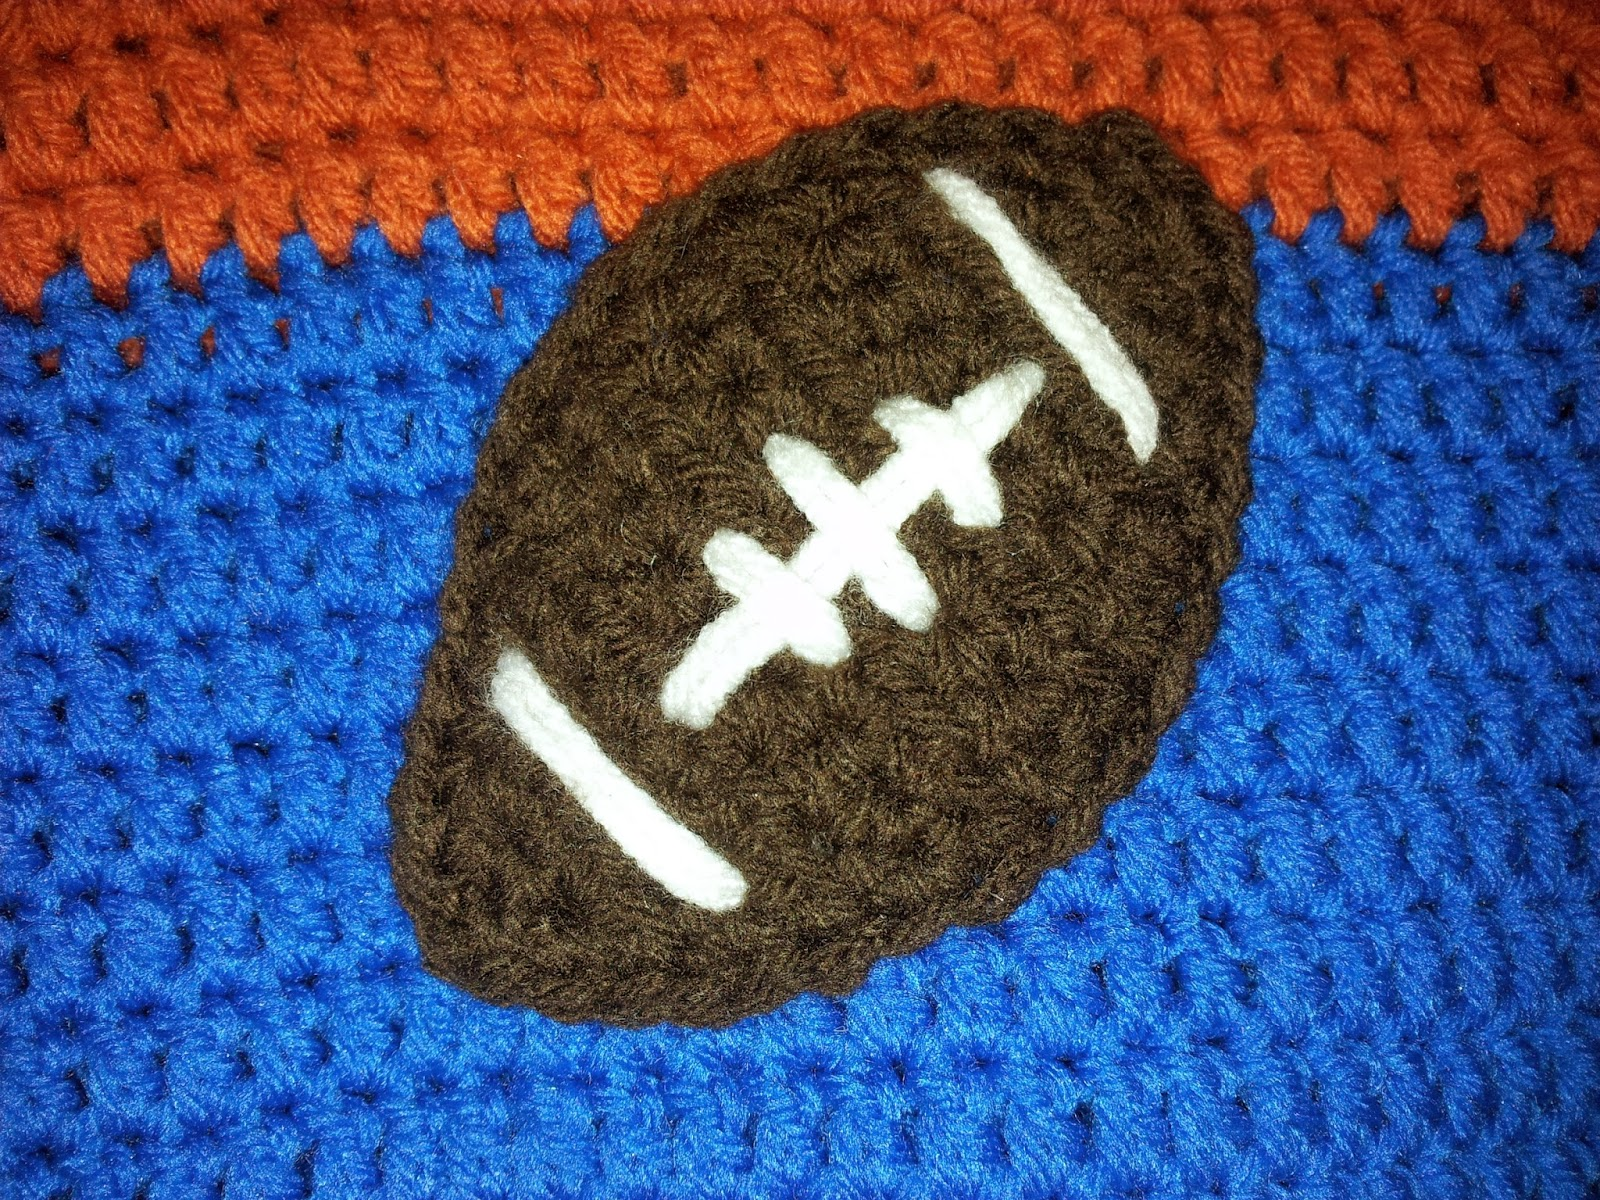 Cherishable Creations: FREE PATTERN - Football Applique